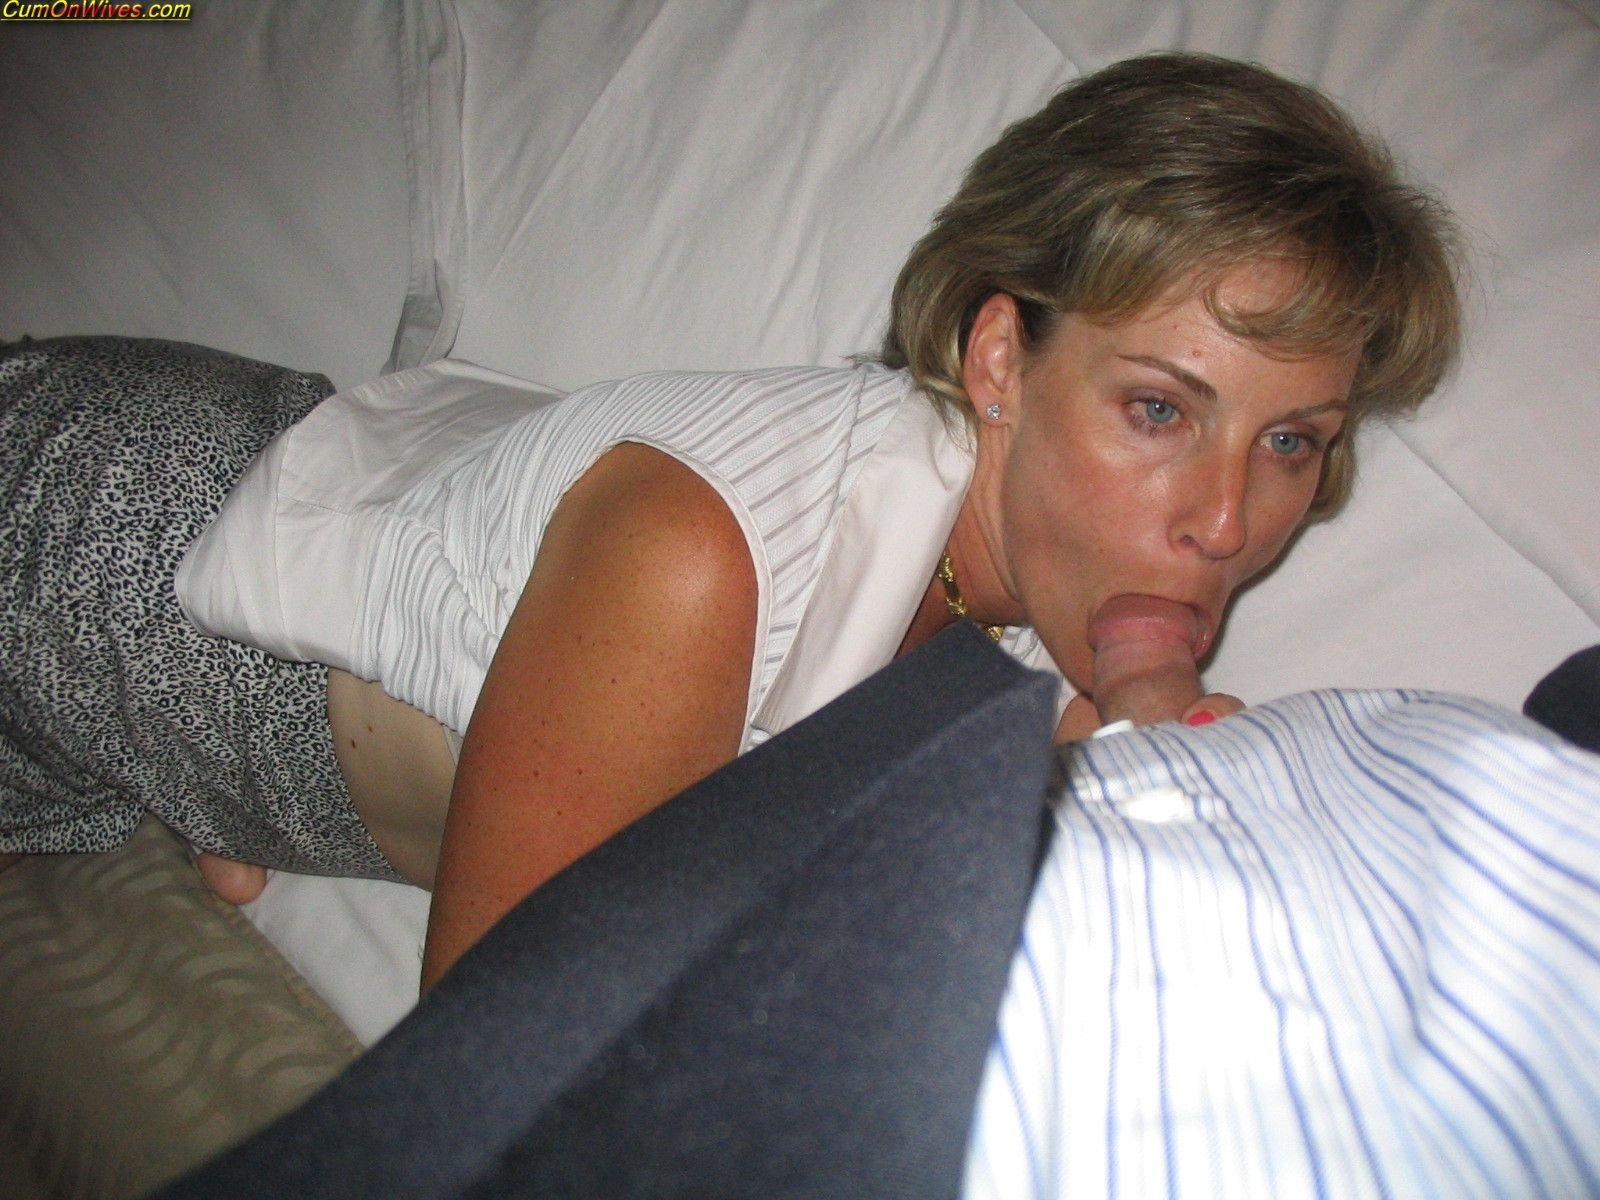 Amateur hairy milf pov and blowjob asslick